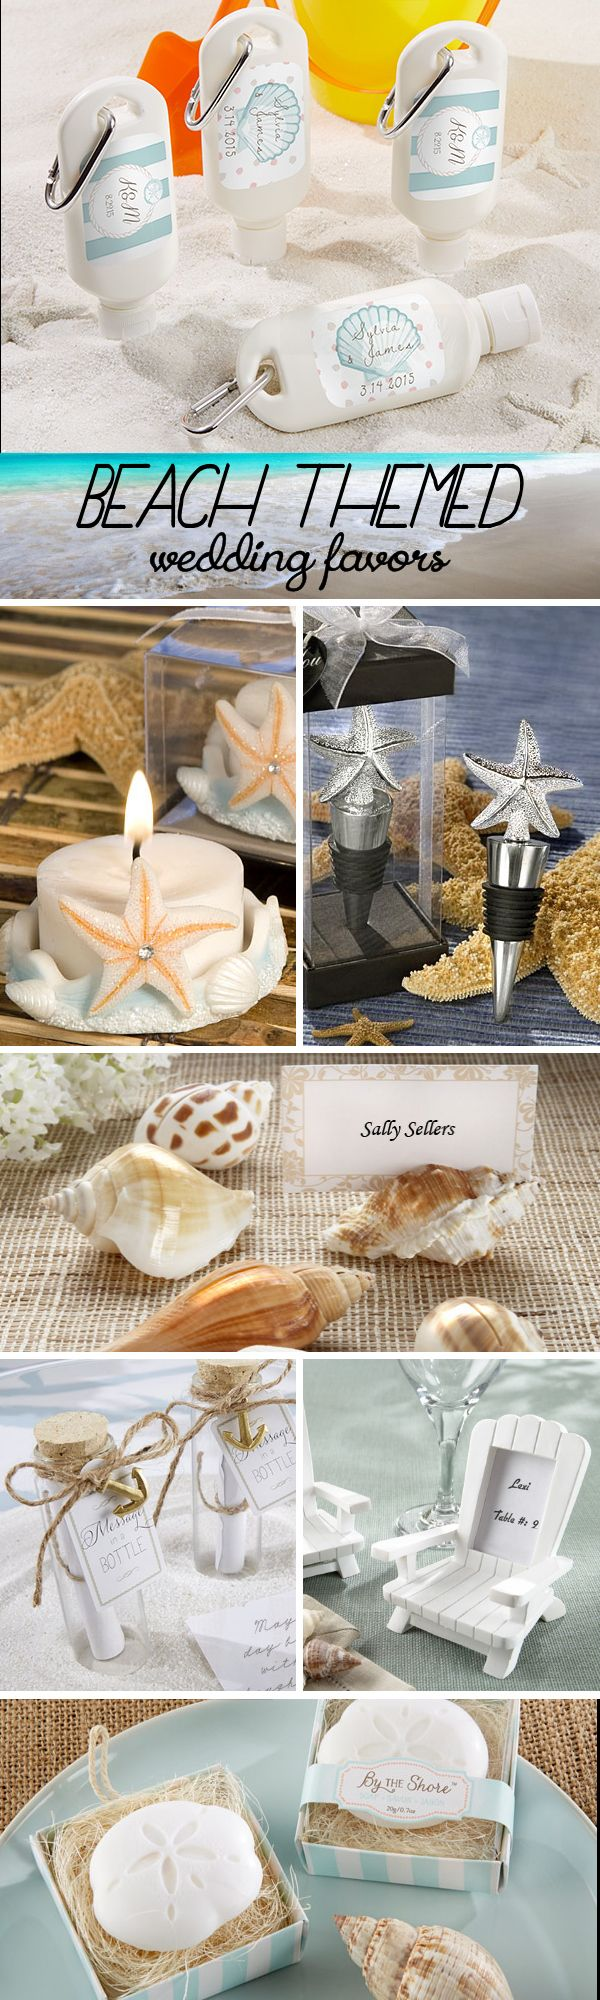 ideas for beach wedding party favors%0A     Beach Themed Wedding Favors that your guests will love